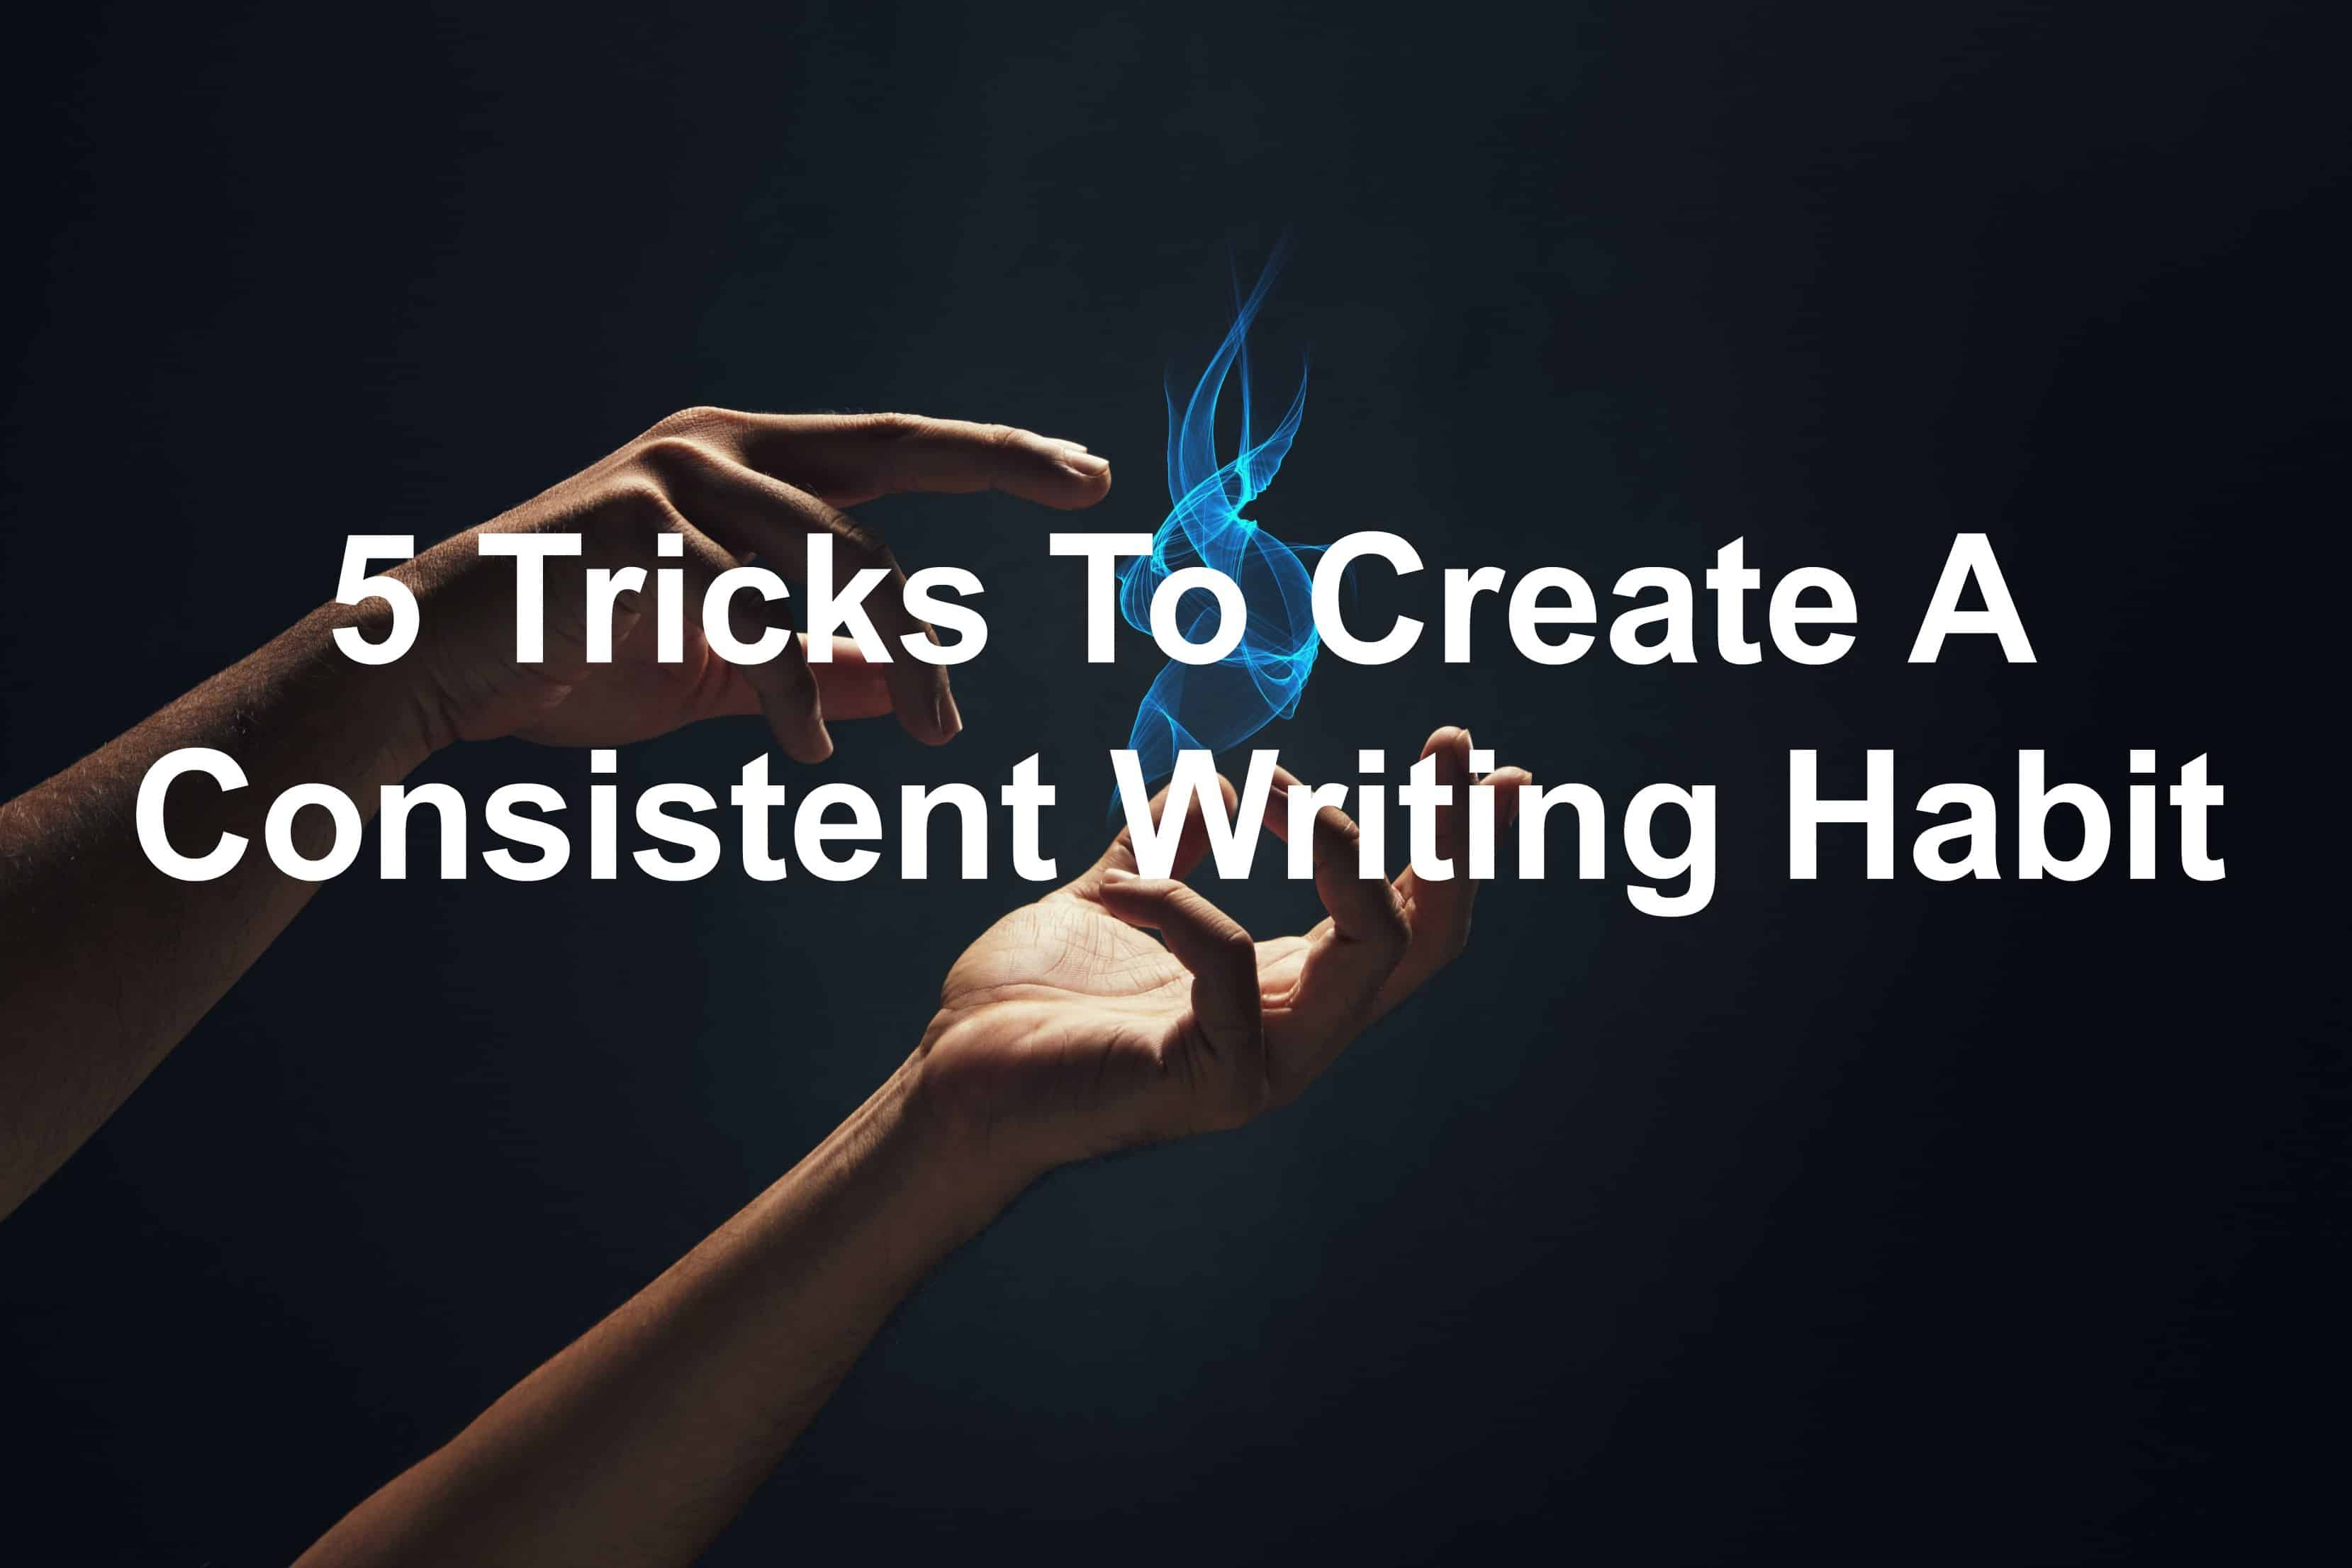 Create a consistent writing habit